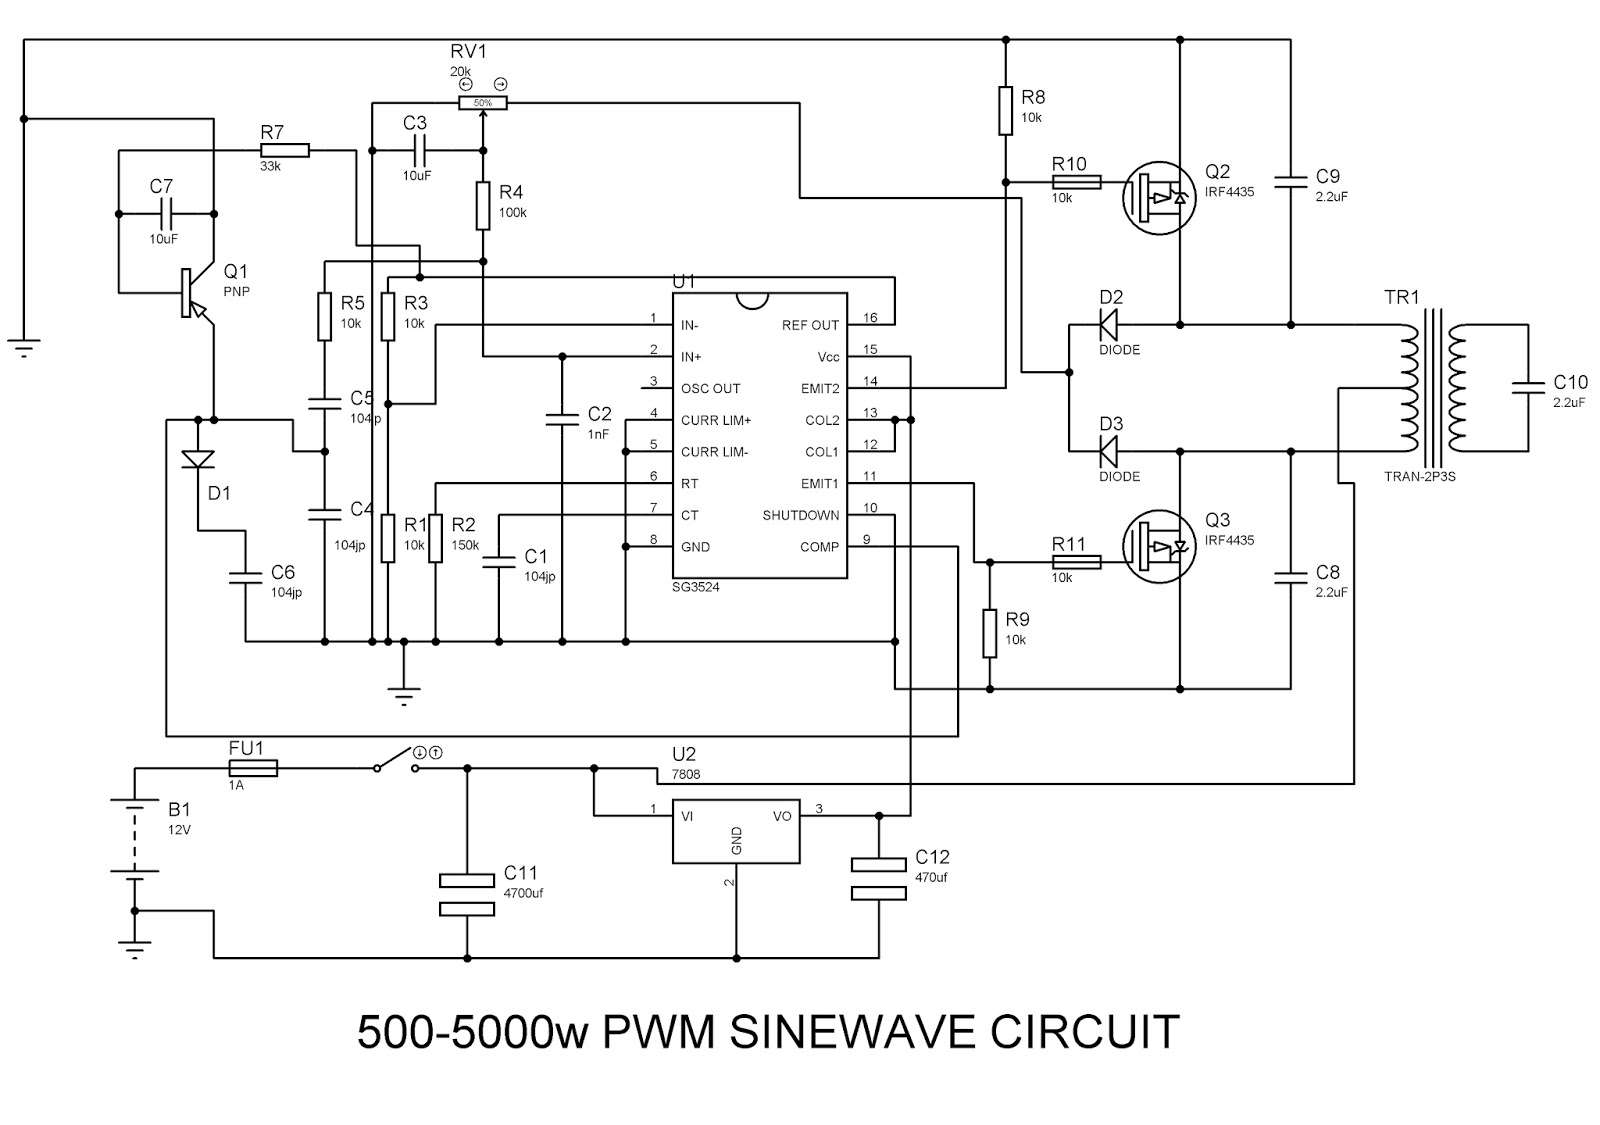 hight resolution of circuit diagram of 500w pwm inverter about the circuit